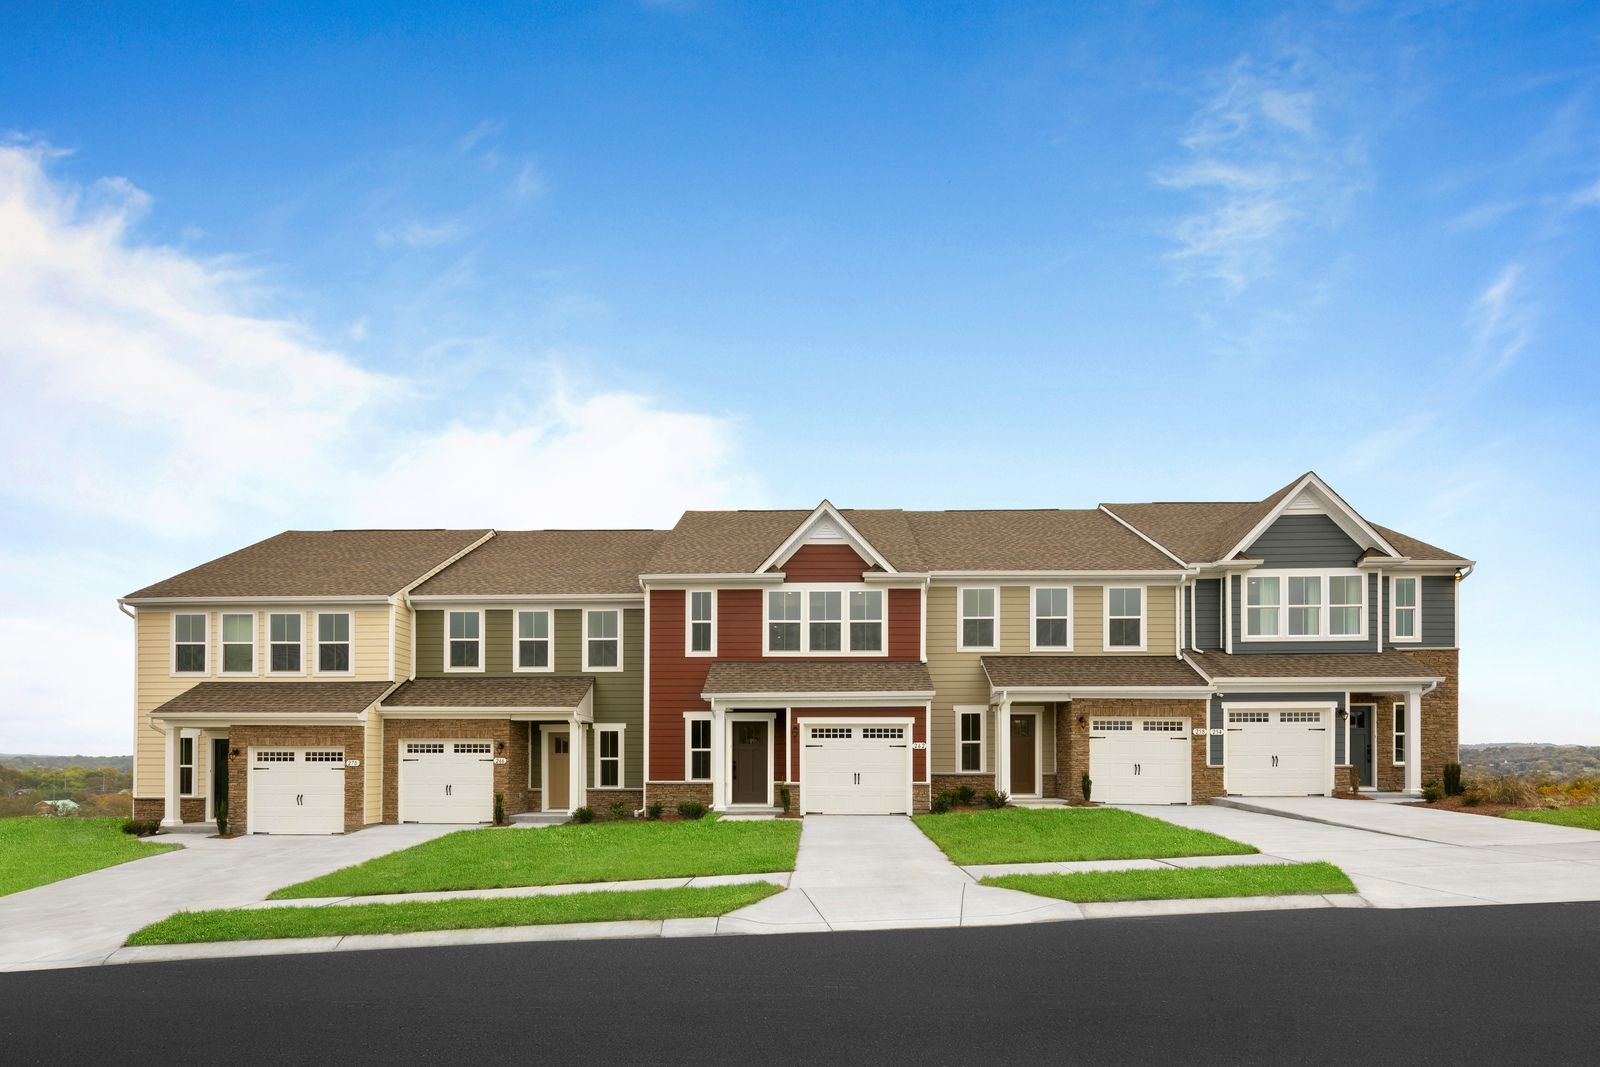 Own an affordable townhome near downtown Nashville:Enjoy all of the style and none of the maintenance. Rare first floor owner's suite options with 1 and 2-car garages.Click here to schedule a visit to tour both of our decorated models!